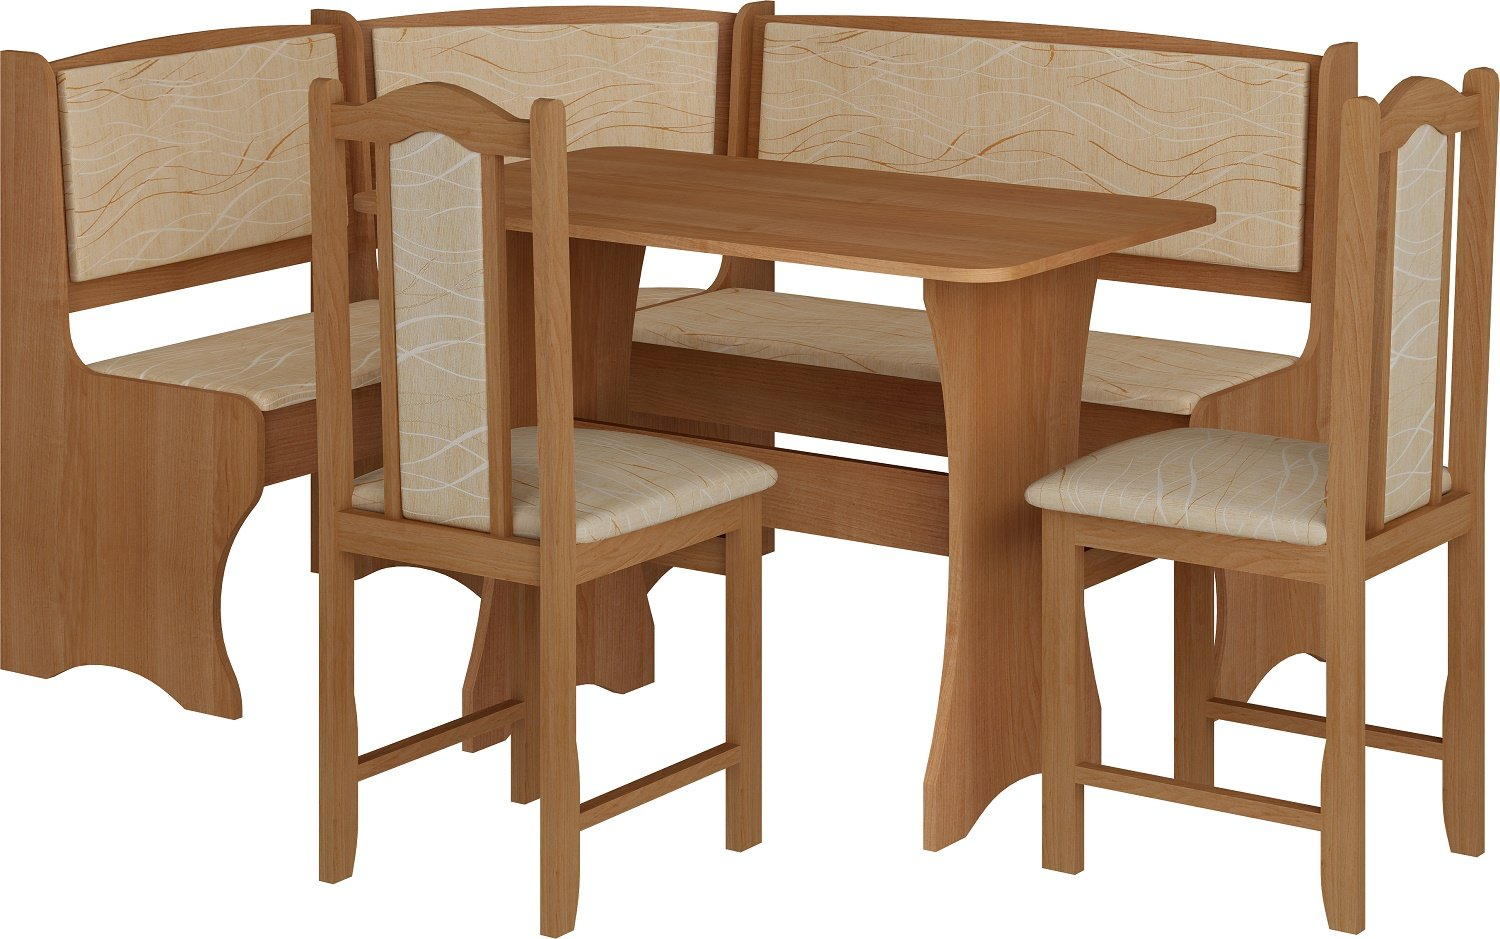 Breakfast Kitchen Nook Table Set, Bench Seating With Storage and Chairs, Alder Color